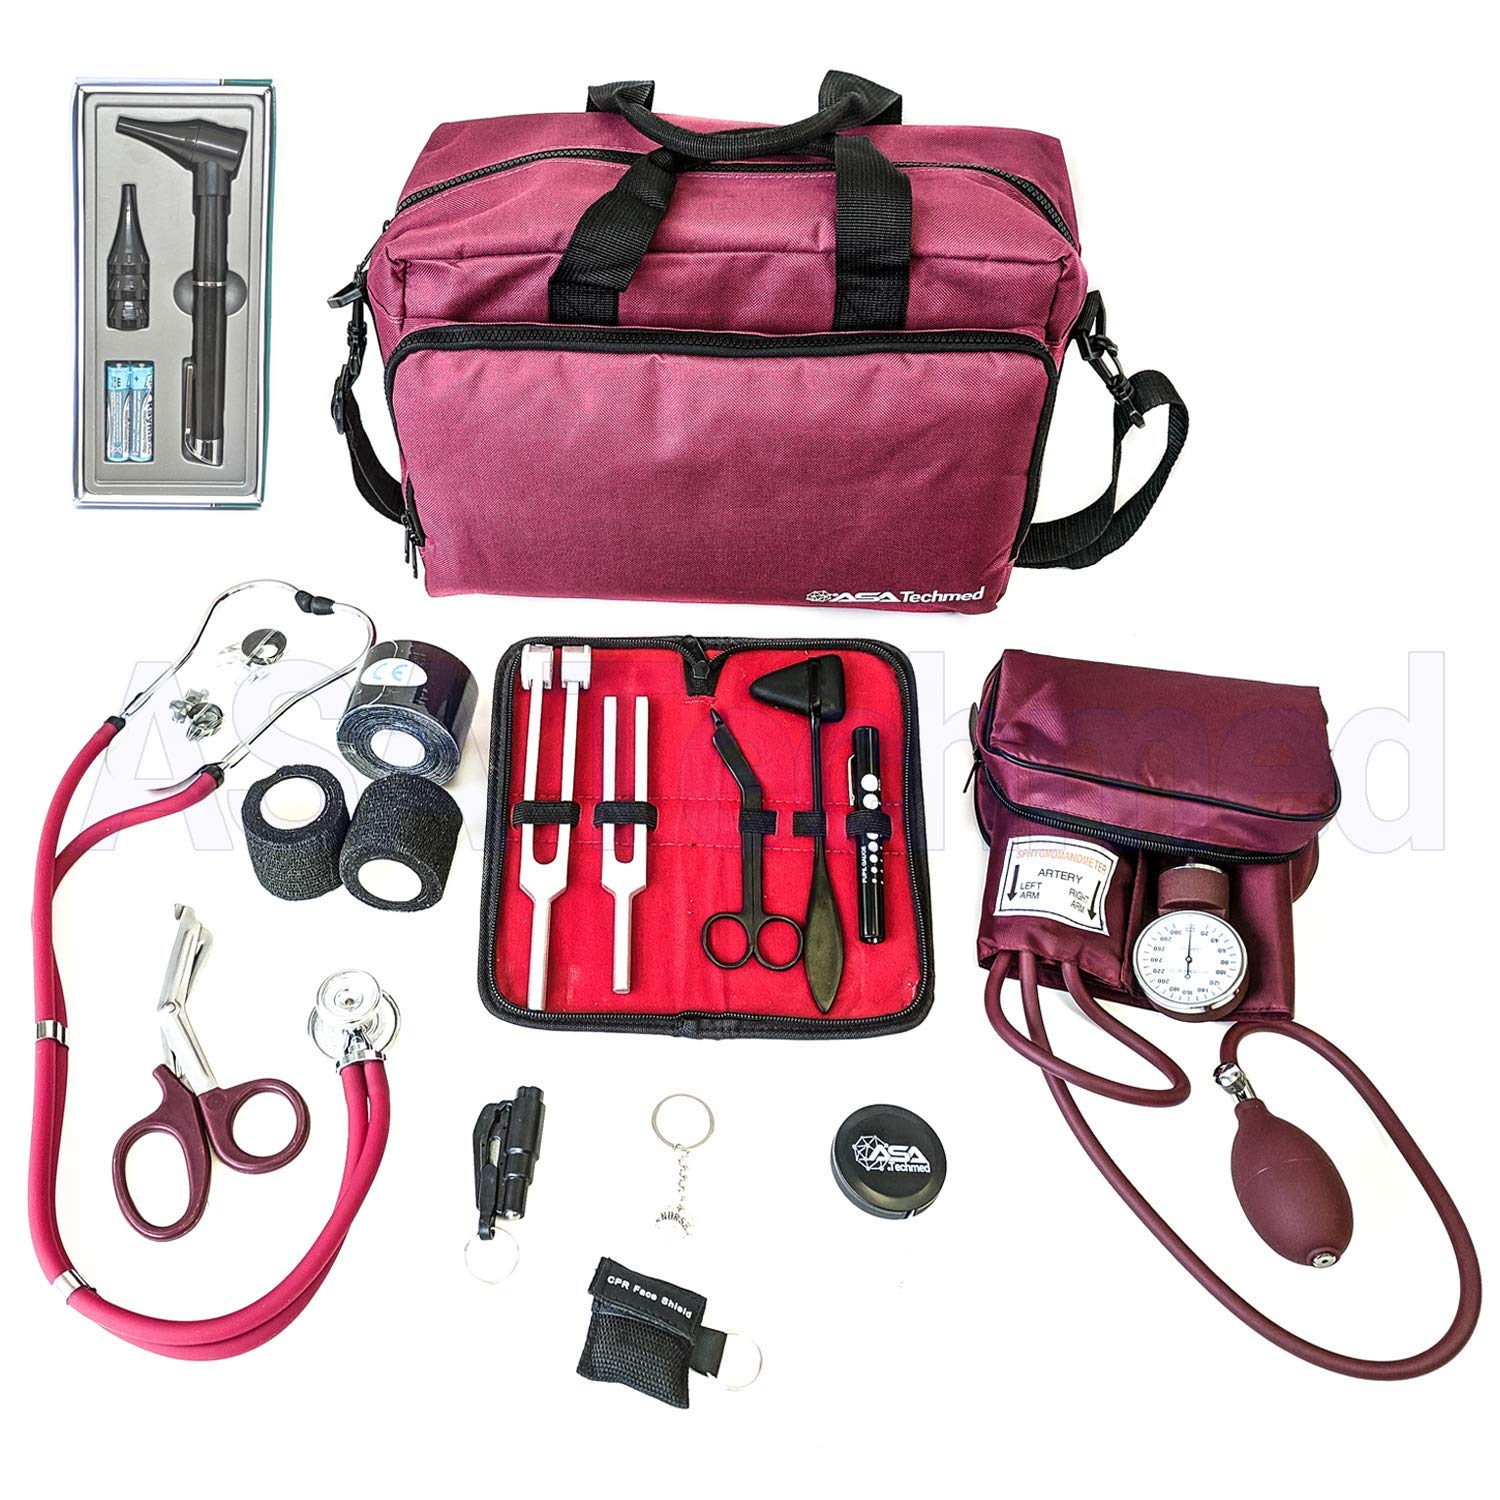 ASATechmed Nurse Starter Kit - Stethoscope, Blood Pressure Monitor, Tuning Forks, and More - 18 Pieces Total (Burgundy)